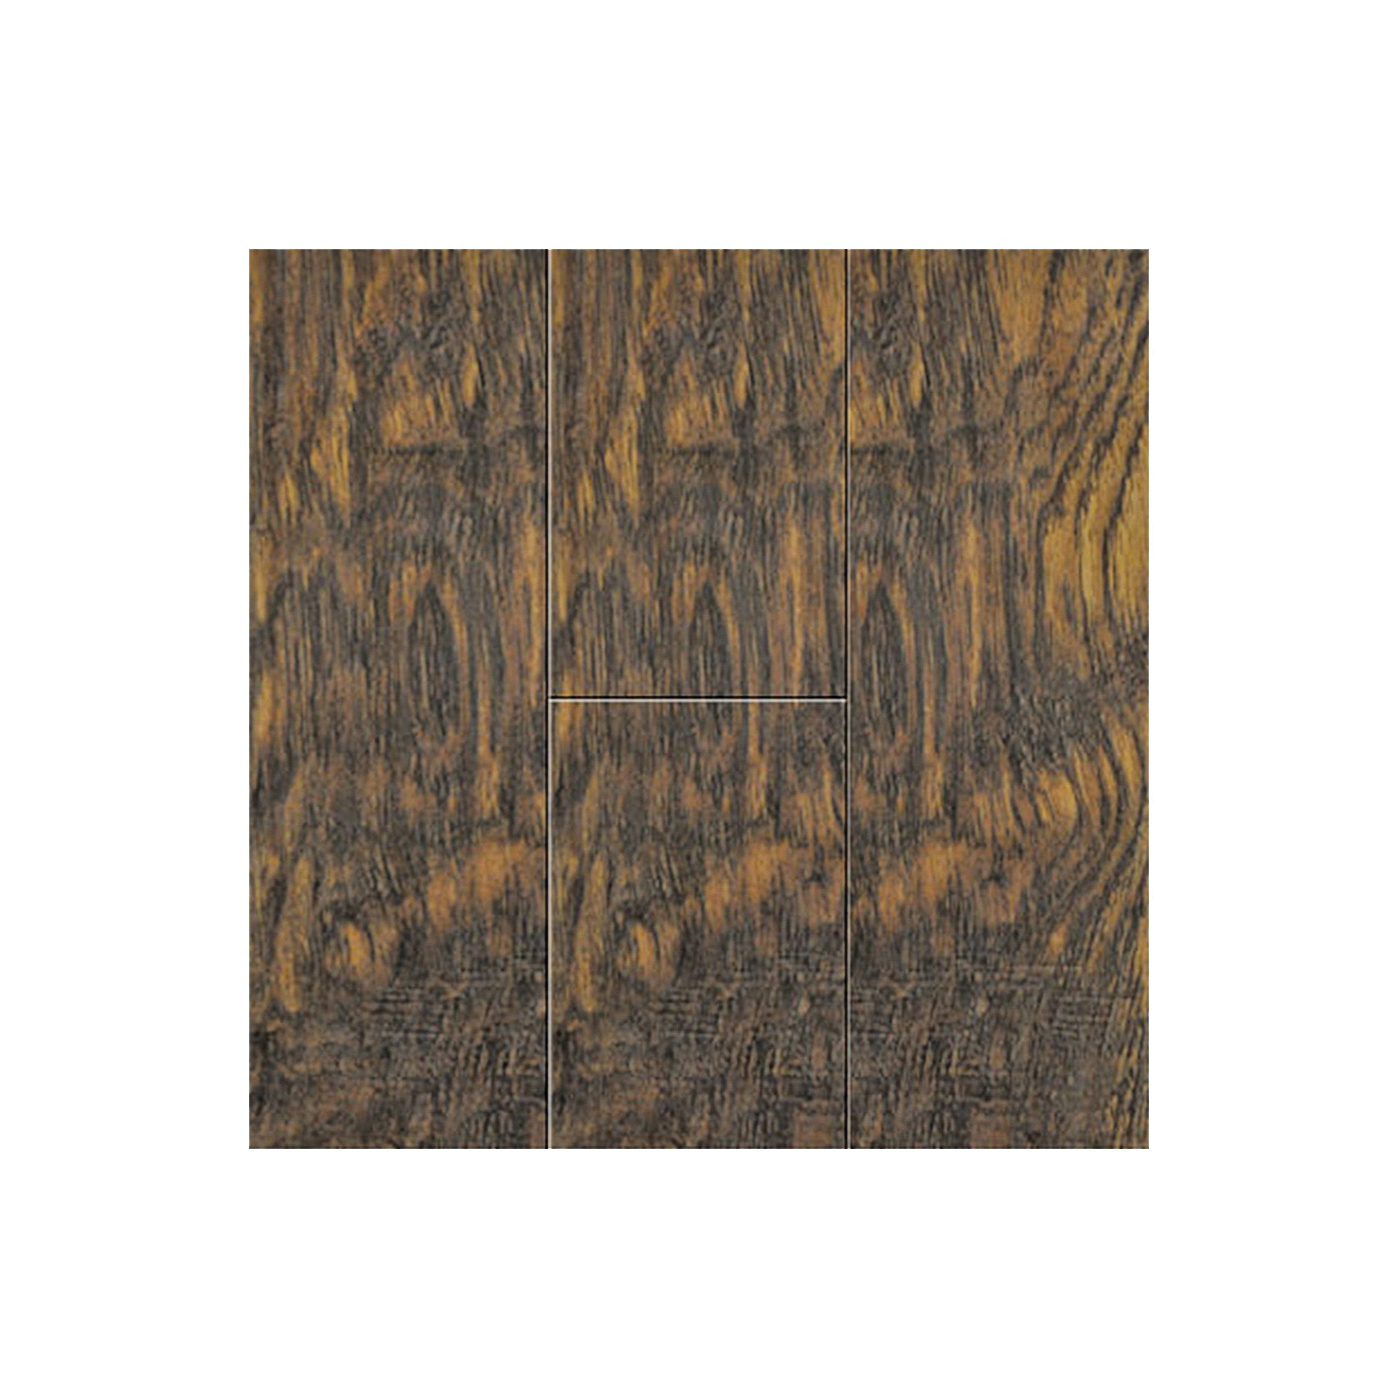 Picture of Courey Unifloor Sheffield 21231247 Laminate Flooring, Plank Profile, Fiberboard, Brazilian Hickory, 48 in L